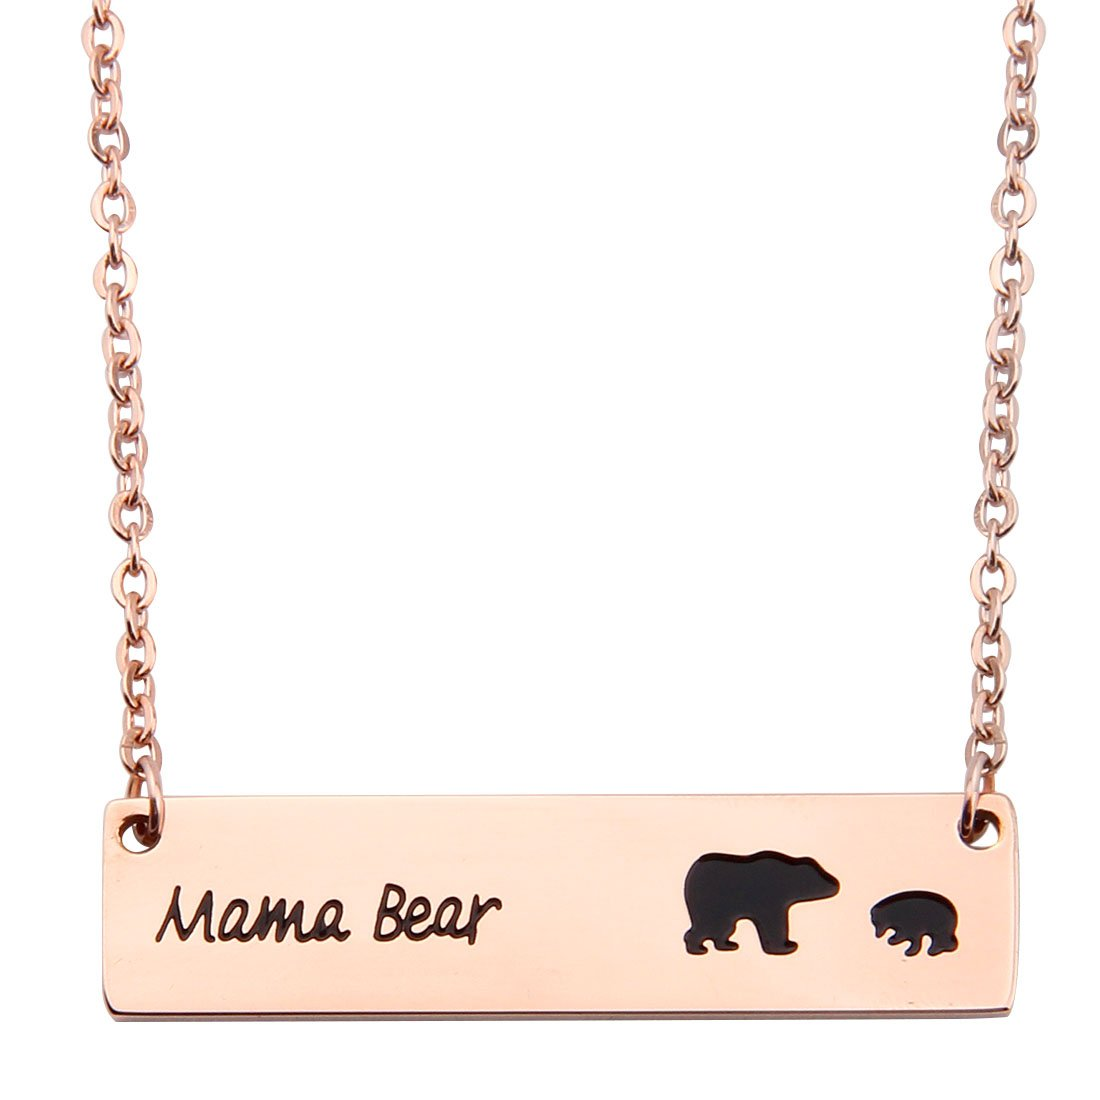 Ensianth Honey Family Mama Bear Bar Necklace Gifts for Mother's Day CA-OW-018